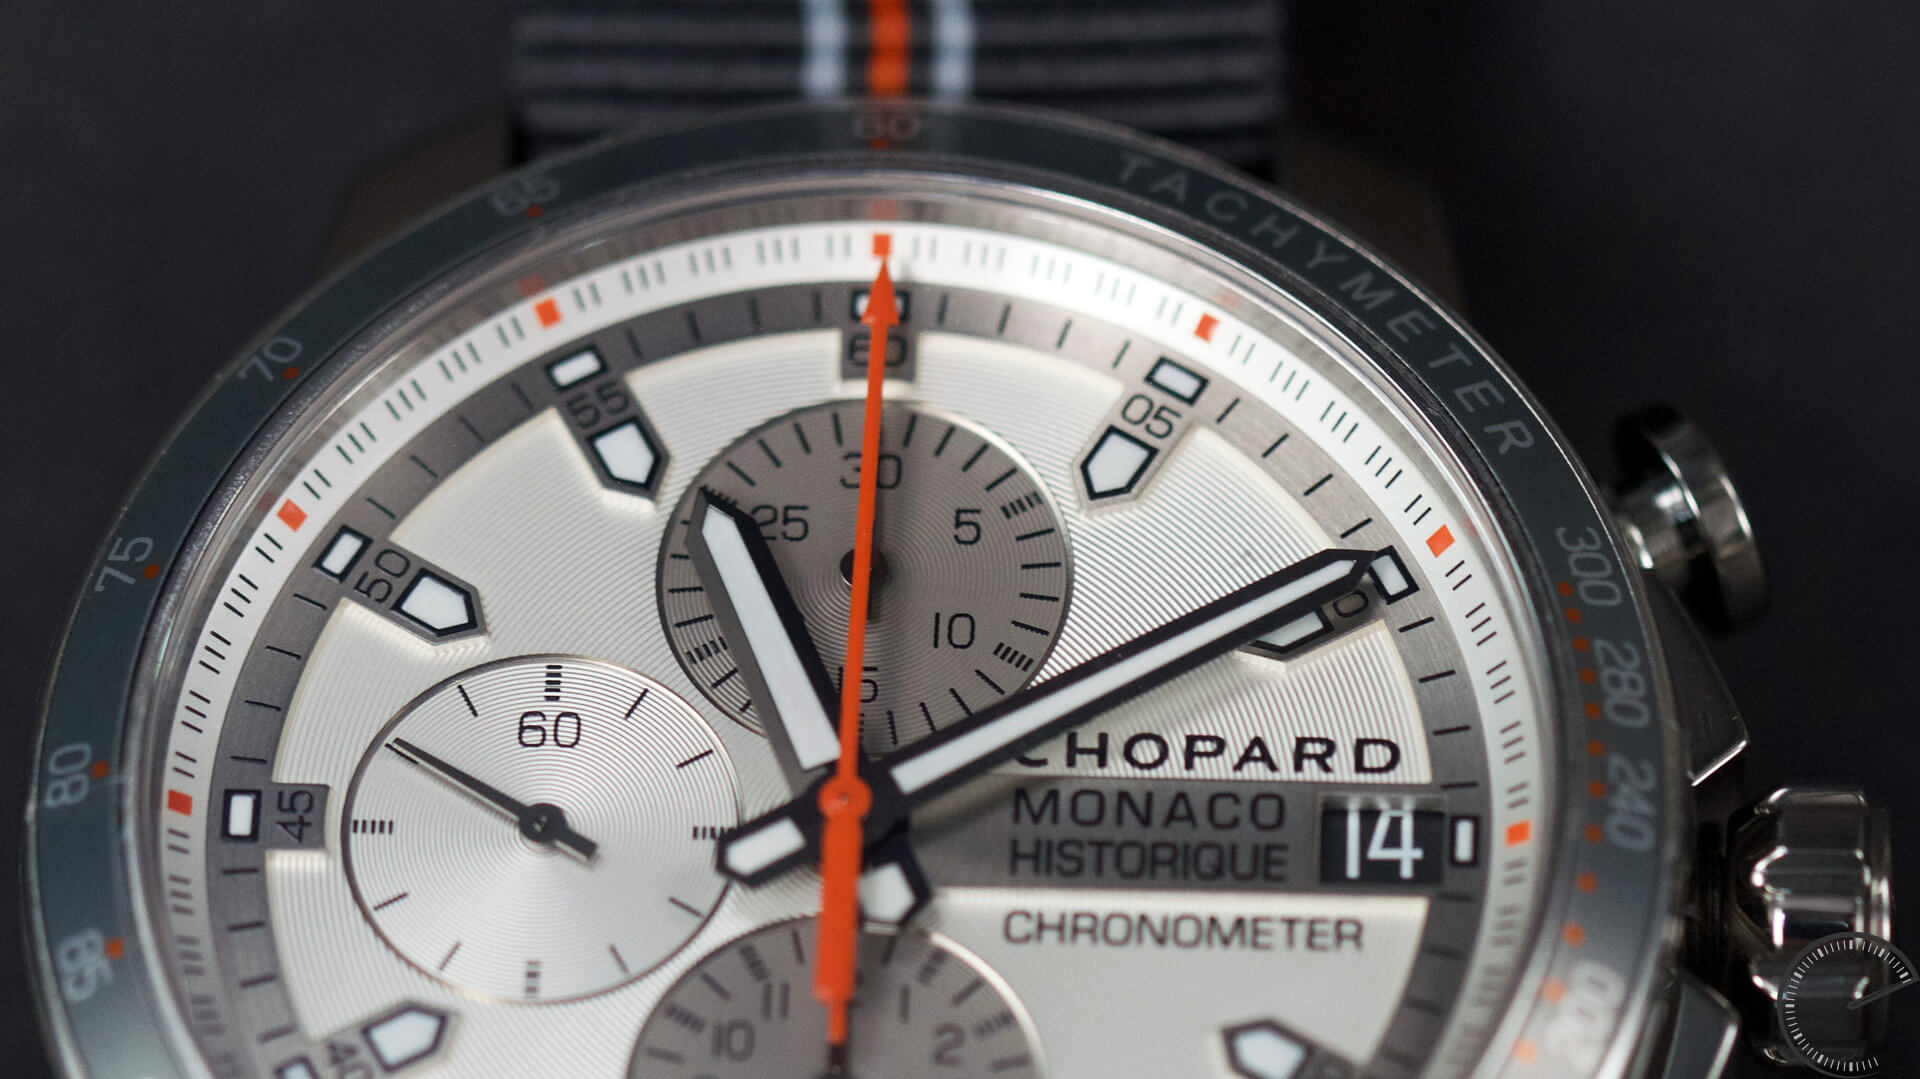 Chopard_GPMH_2016_Race_Edition_Titanium_Steel_dial2 - ESCAPEMENT MAGAZINE - watch reviews by Angus Davies